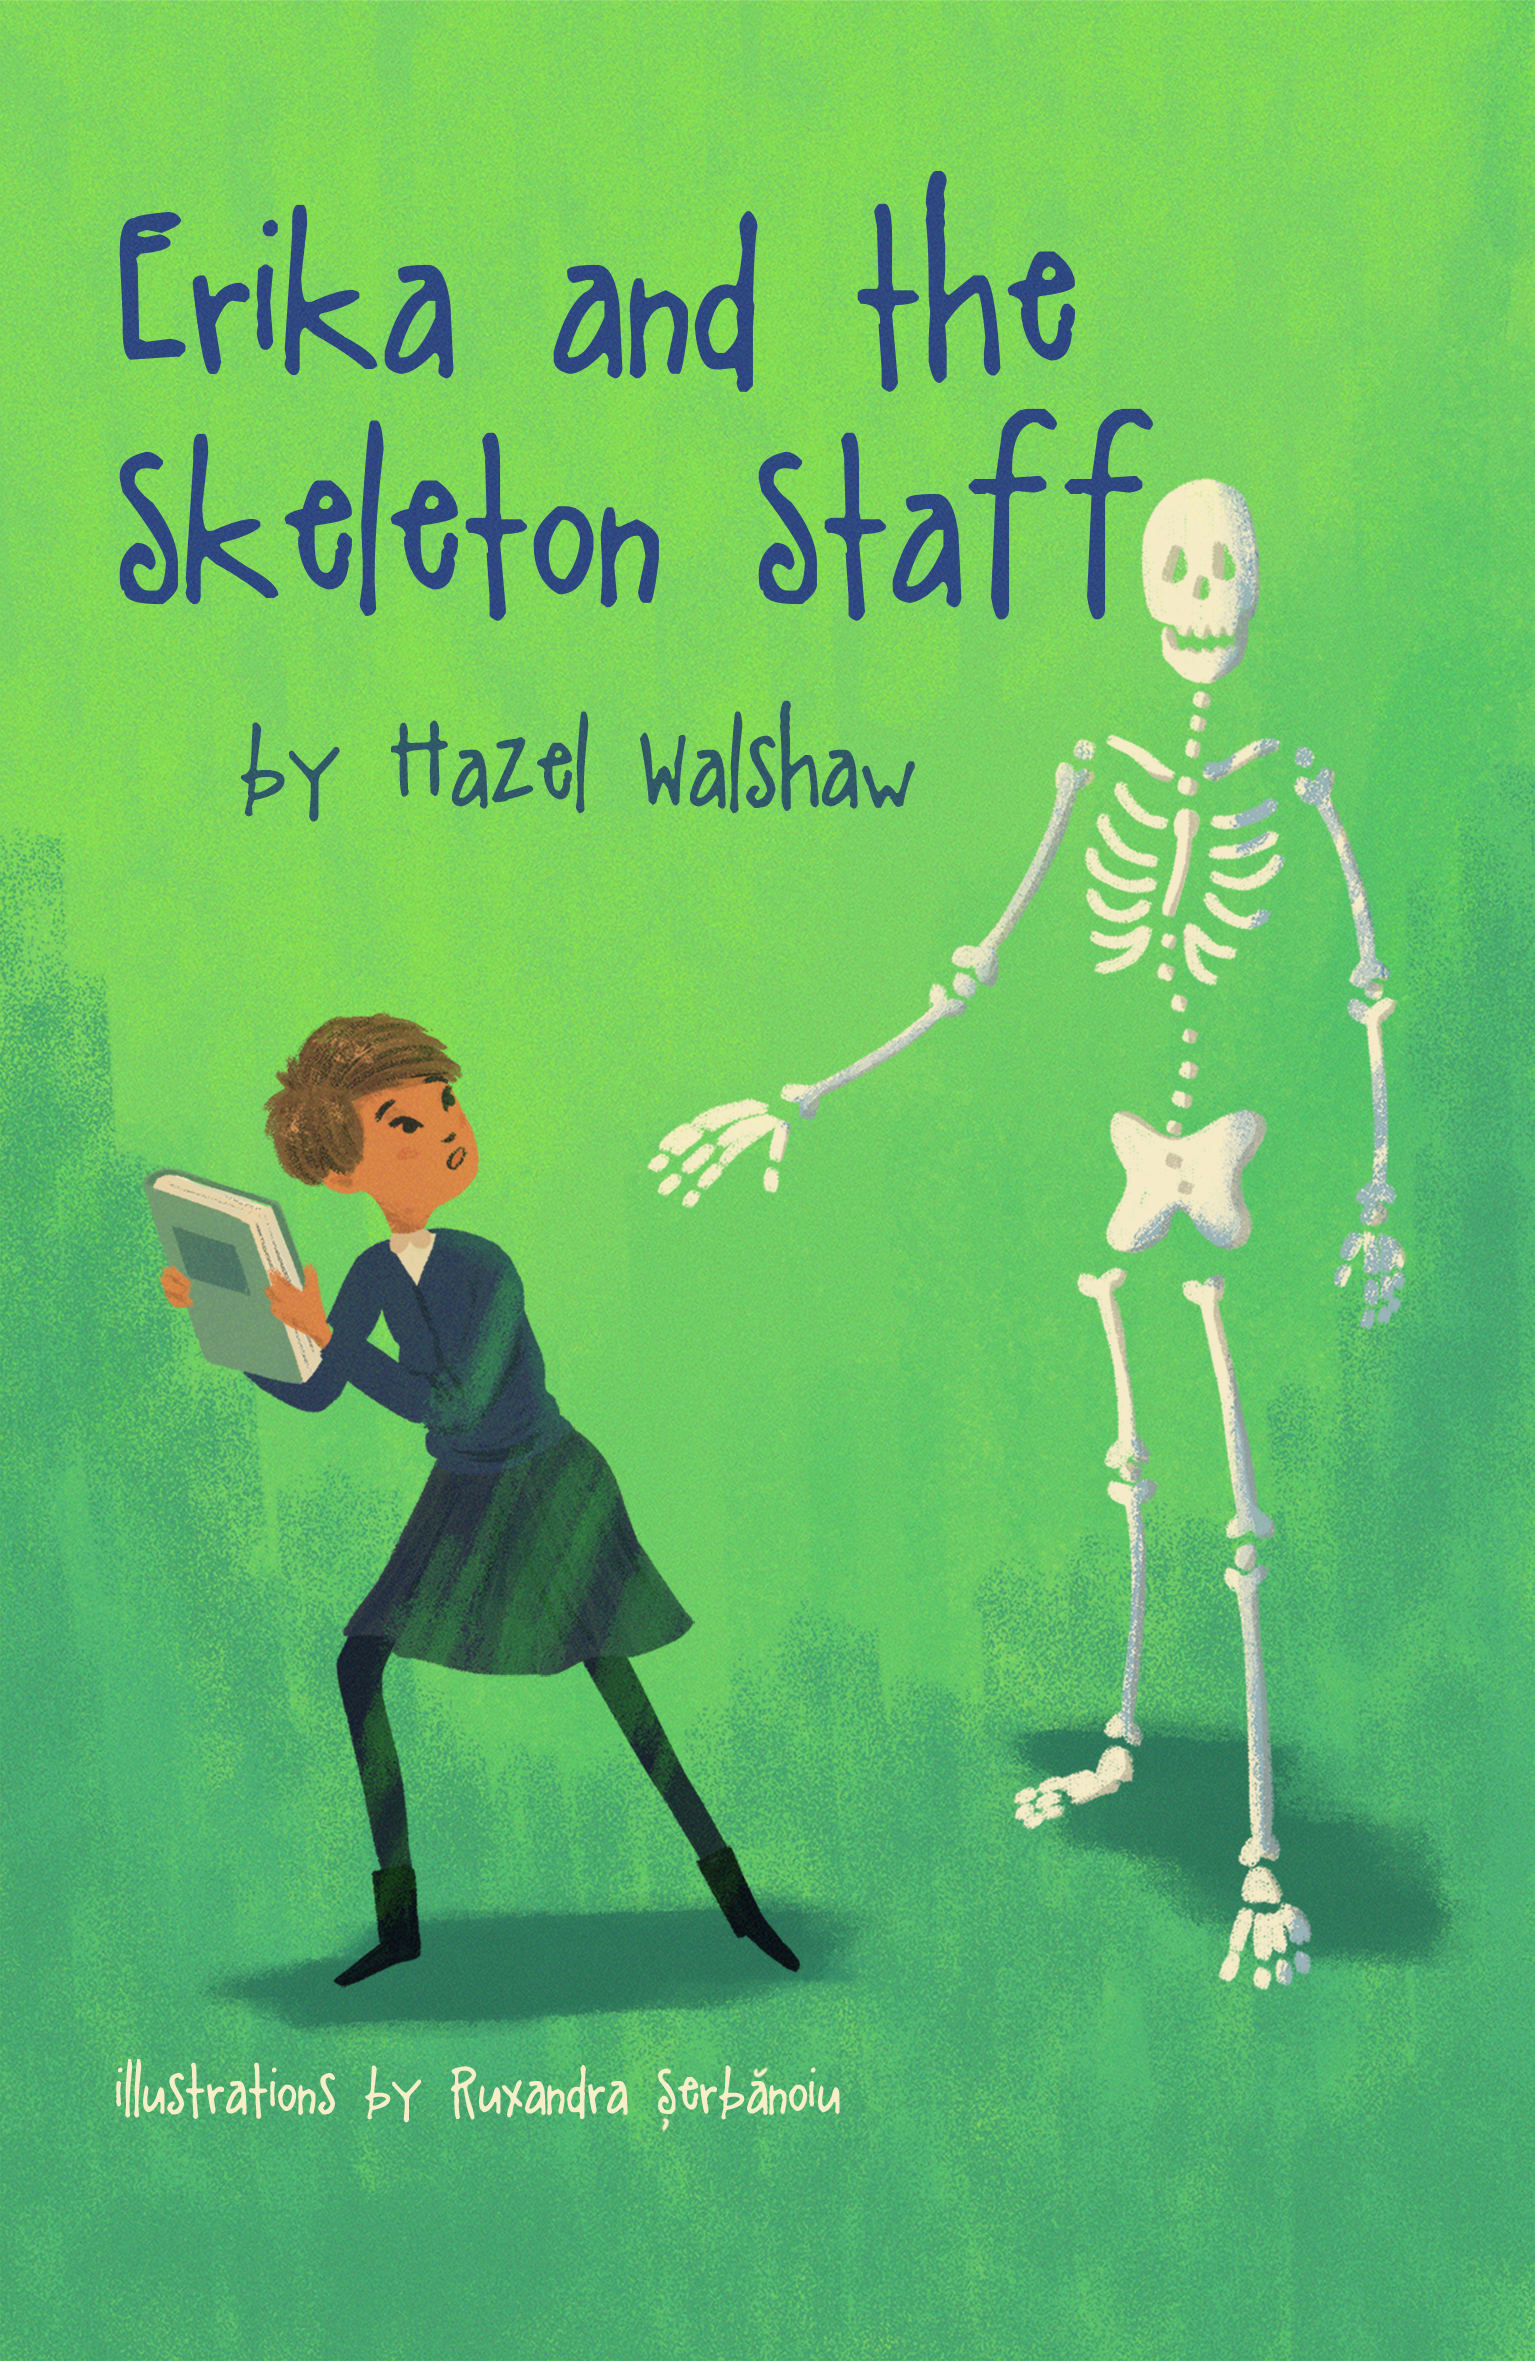 Erika and the Skeleton Staff's Ebook Image